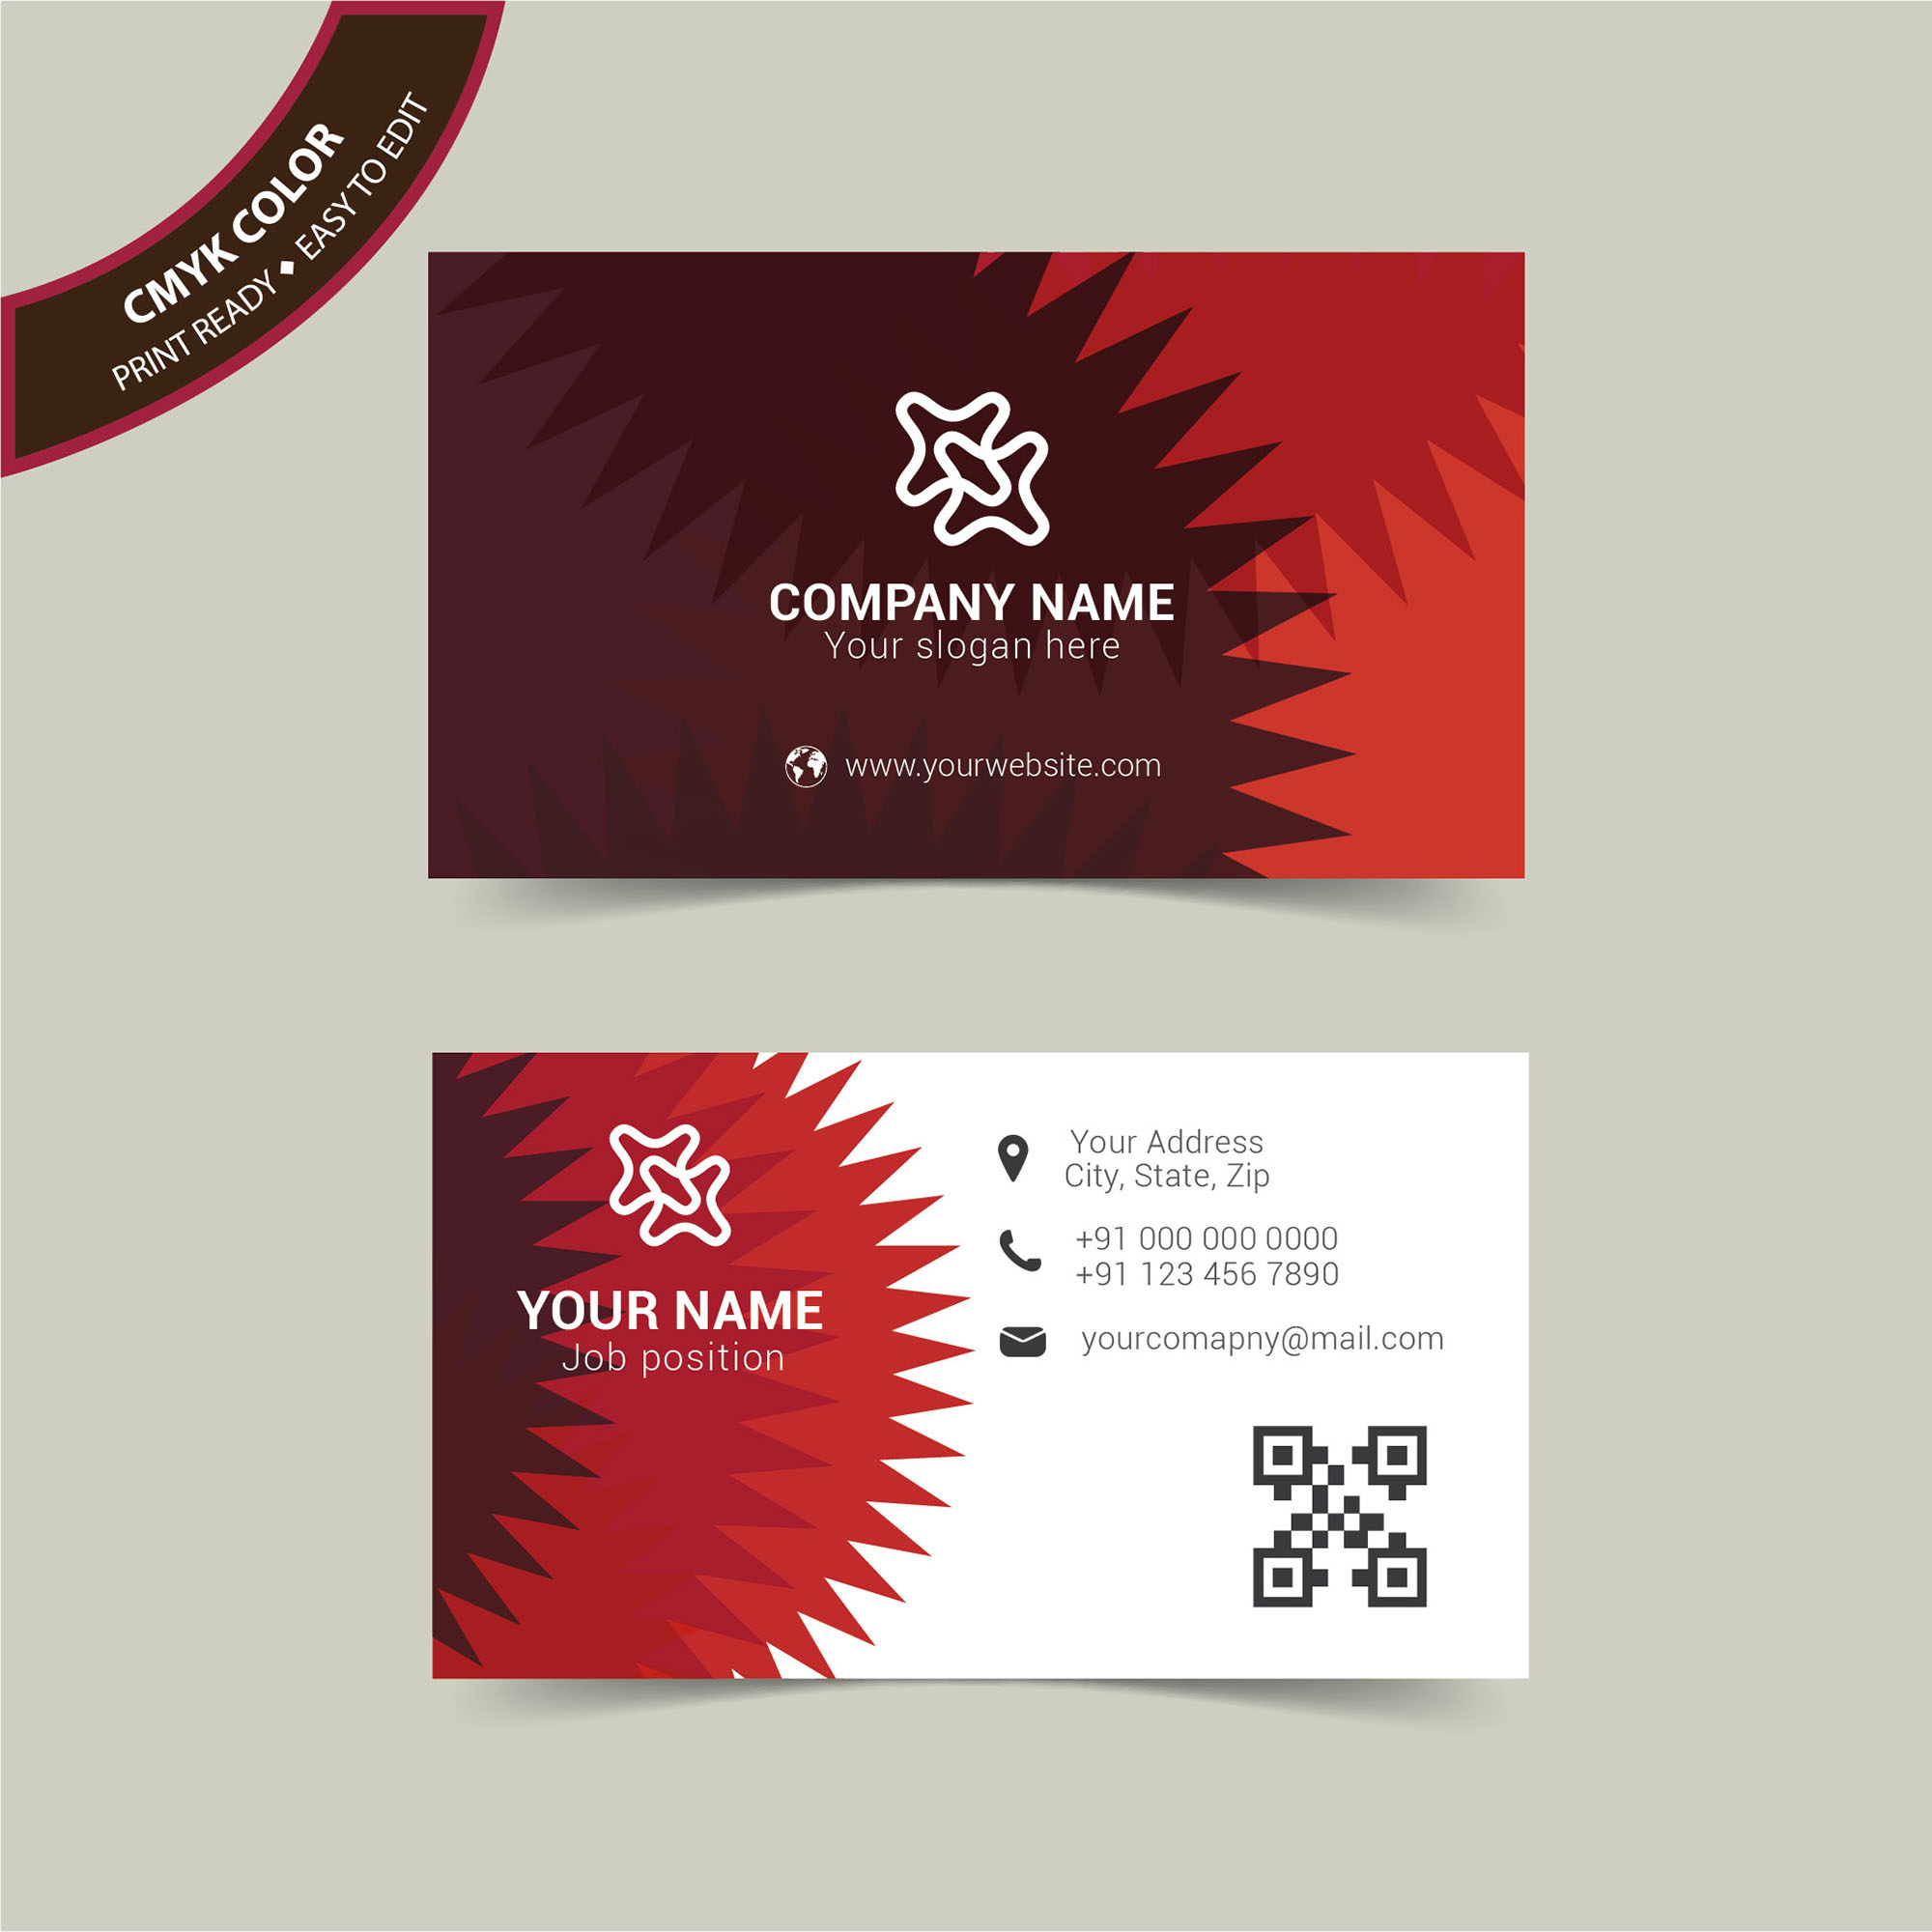 Abstract professional business card free download wisxi business card business cards business card design business card template design templates accmission Gallery